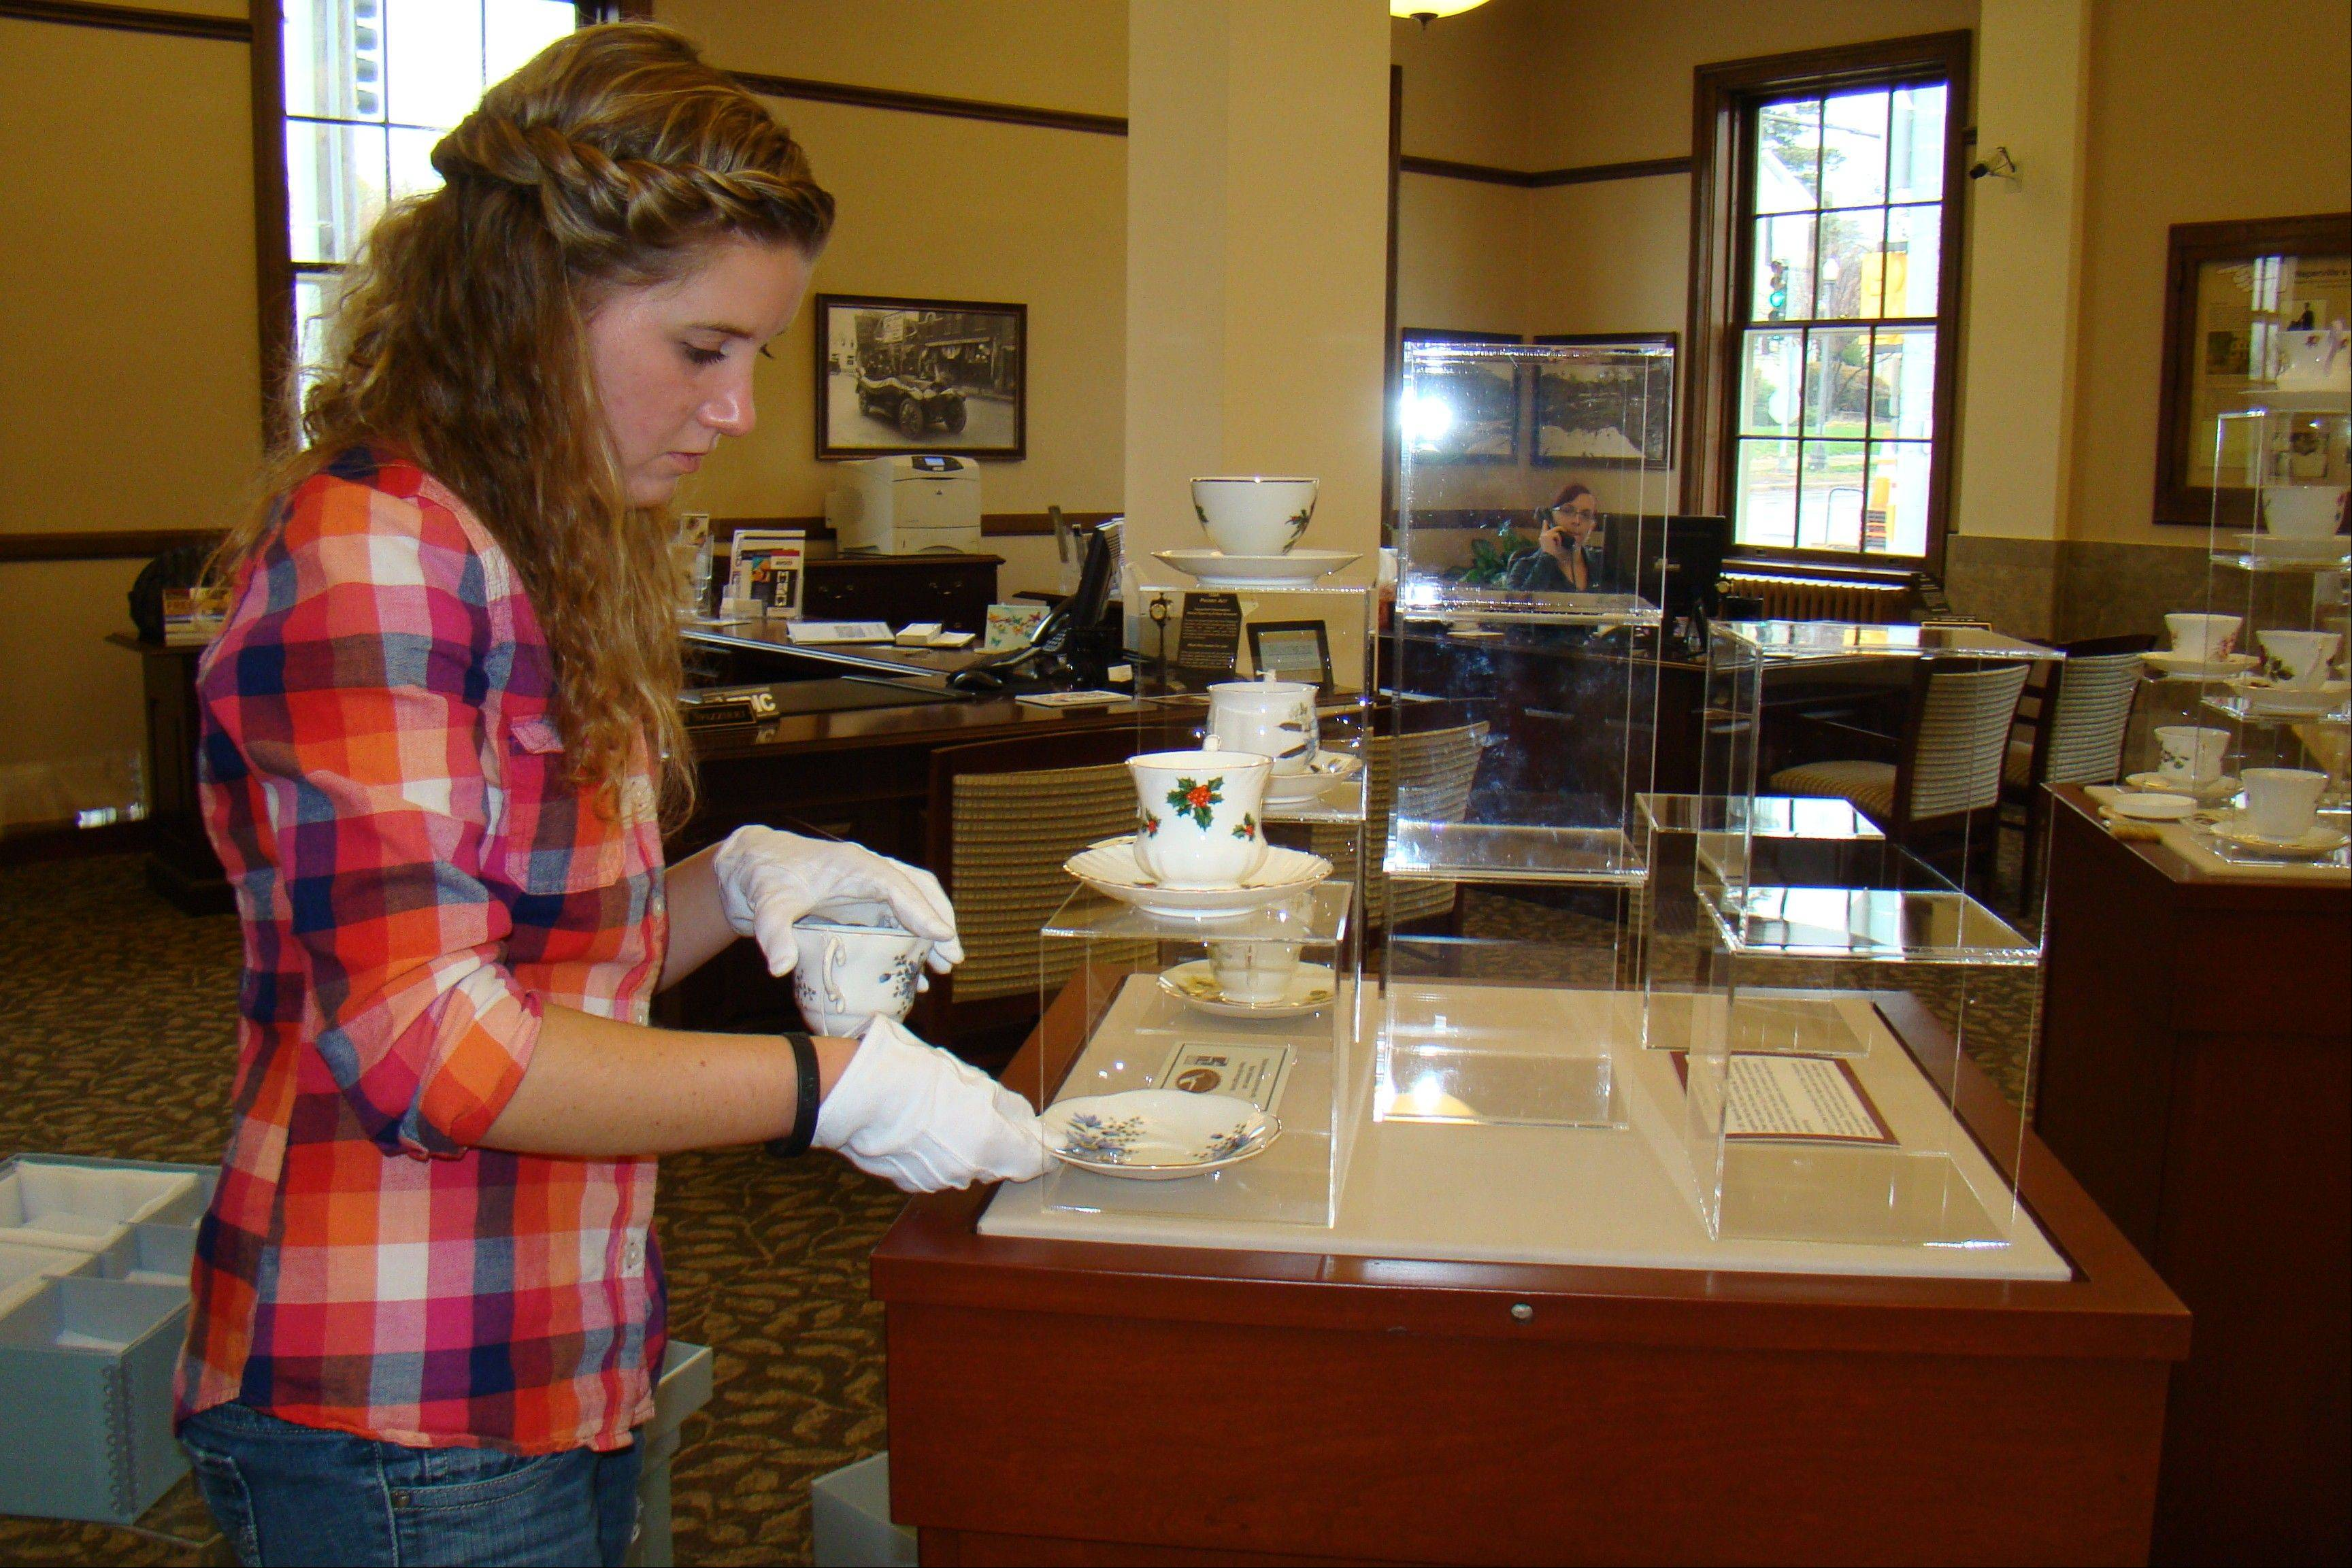 Tiffany Tindell, a sophomore at North Central College, researched and chose all the teacups and saucers for the Cup of Cheer exhibit.